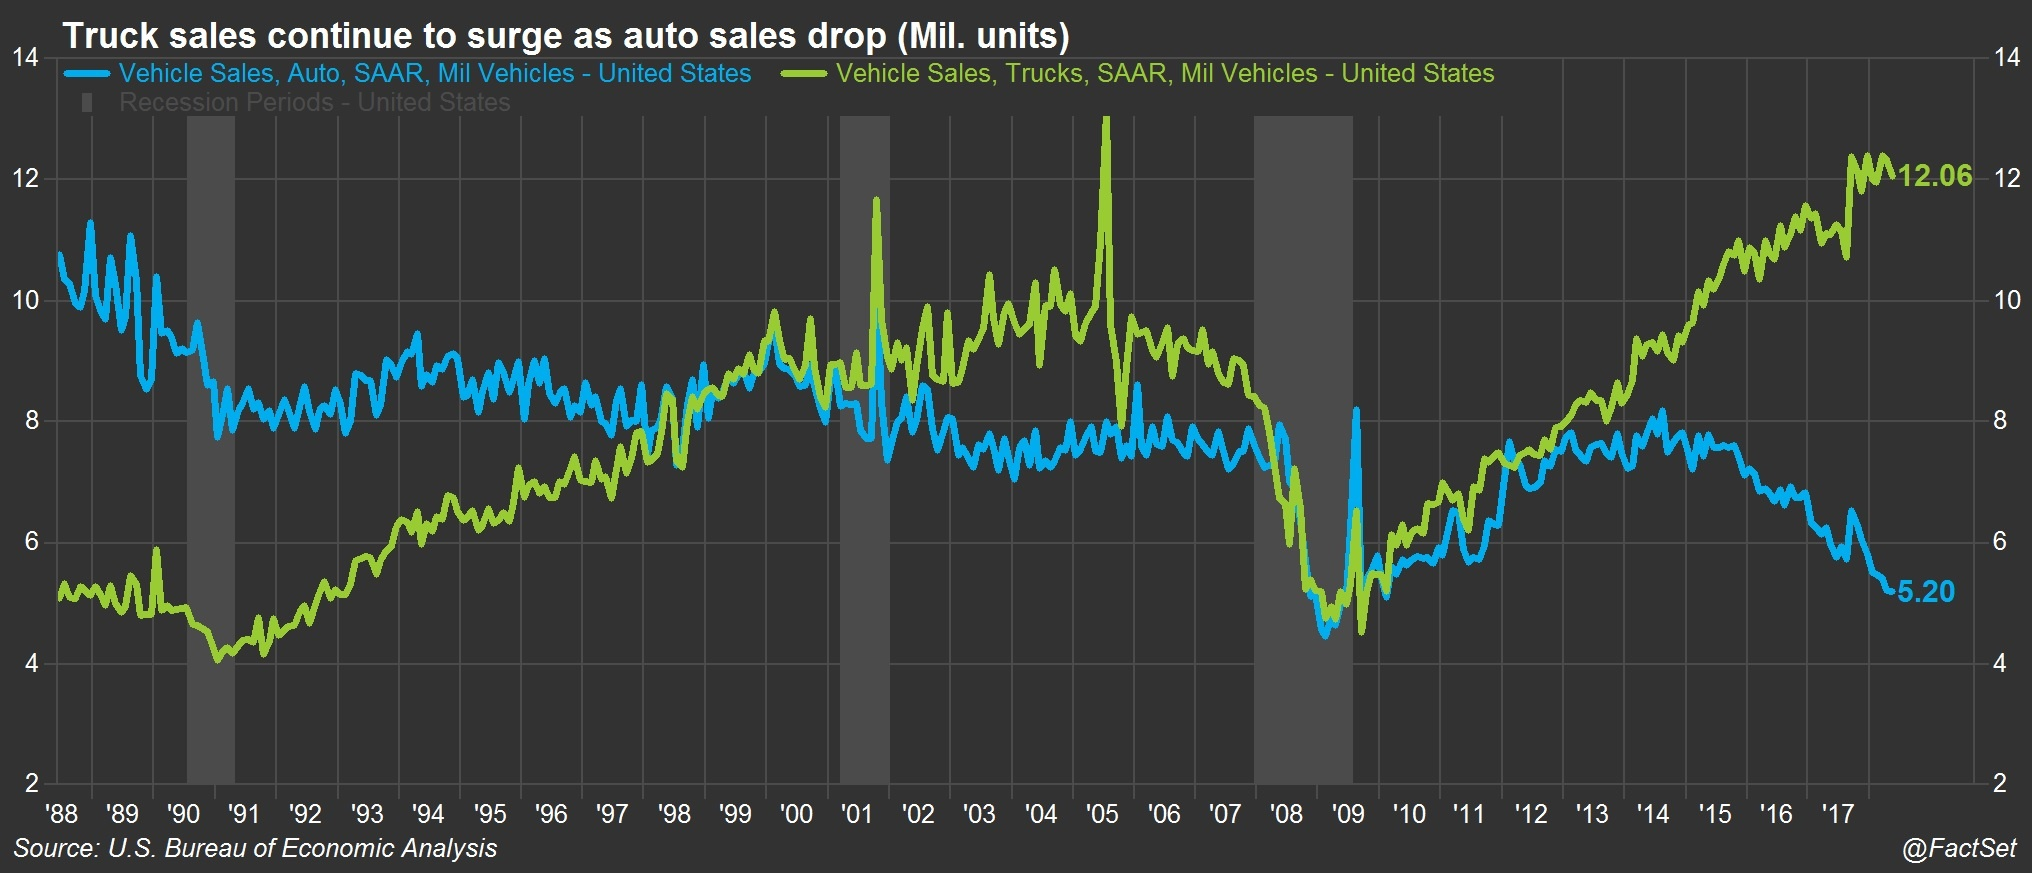 Truck sales continue to surge as auto sales drop